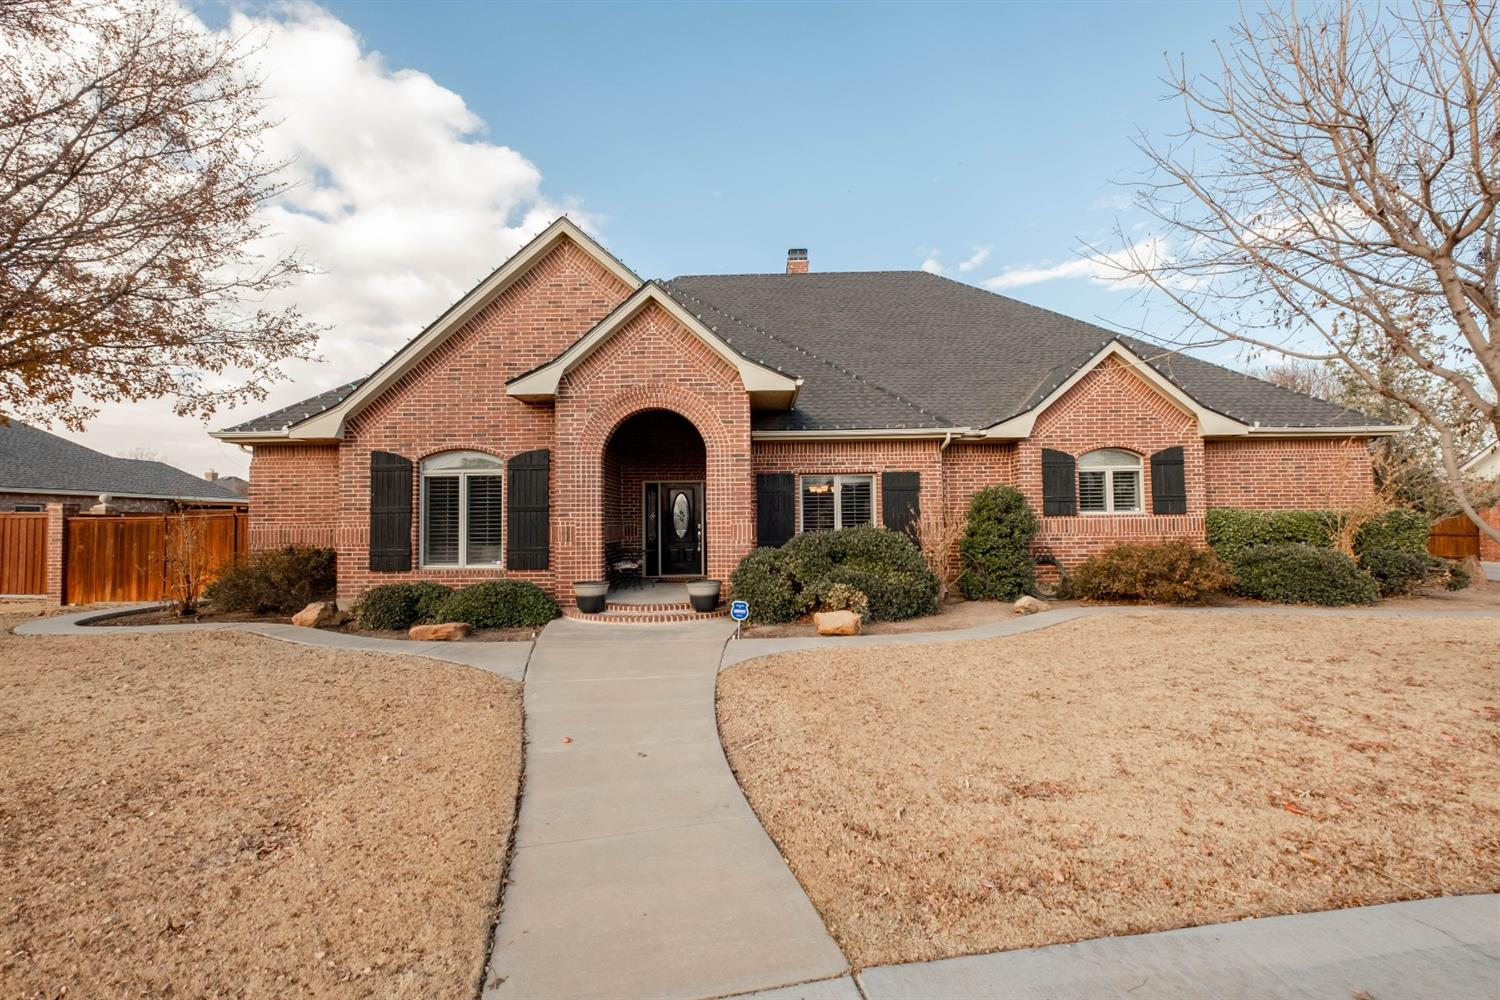 Kick off the new year in this extraordinary 4/3.5/3 home with a HUGE 24' X 20' shop sitting on .5 acres in Llano Estates! This home has entertaining written all over it. You will quickly see yourself enjoying the spacious outdoor living area, the underground self cleaning pool and hot tub, large basement, and the two living areas each with a fireplace. The well equipped kitchen offers a large breakfast island, double oven, and a spacious pantry. Bedrooms include a large master suite, tucked away guest suite, two bedrooms joined by a Jack n Jill bathroom. Recent updates (all within the past 3 years) include a new roof, water softener, dual hot water heaters, and well pump! Located just outside city limits, this home has very low taxes! Not to mention staying free of a water bill with your own well! Call today for your private showing.